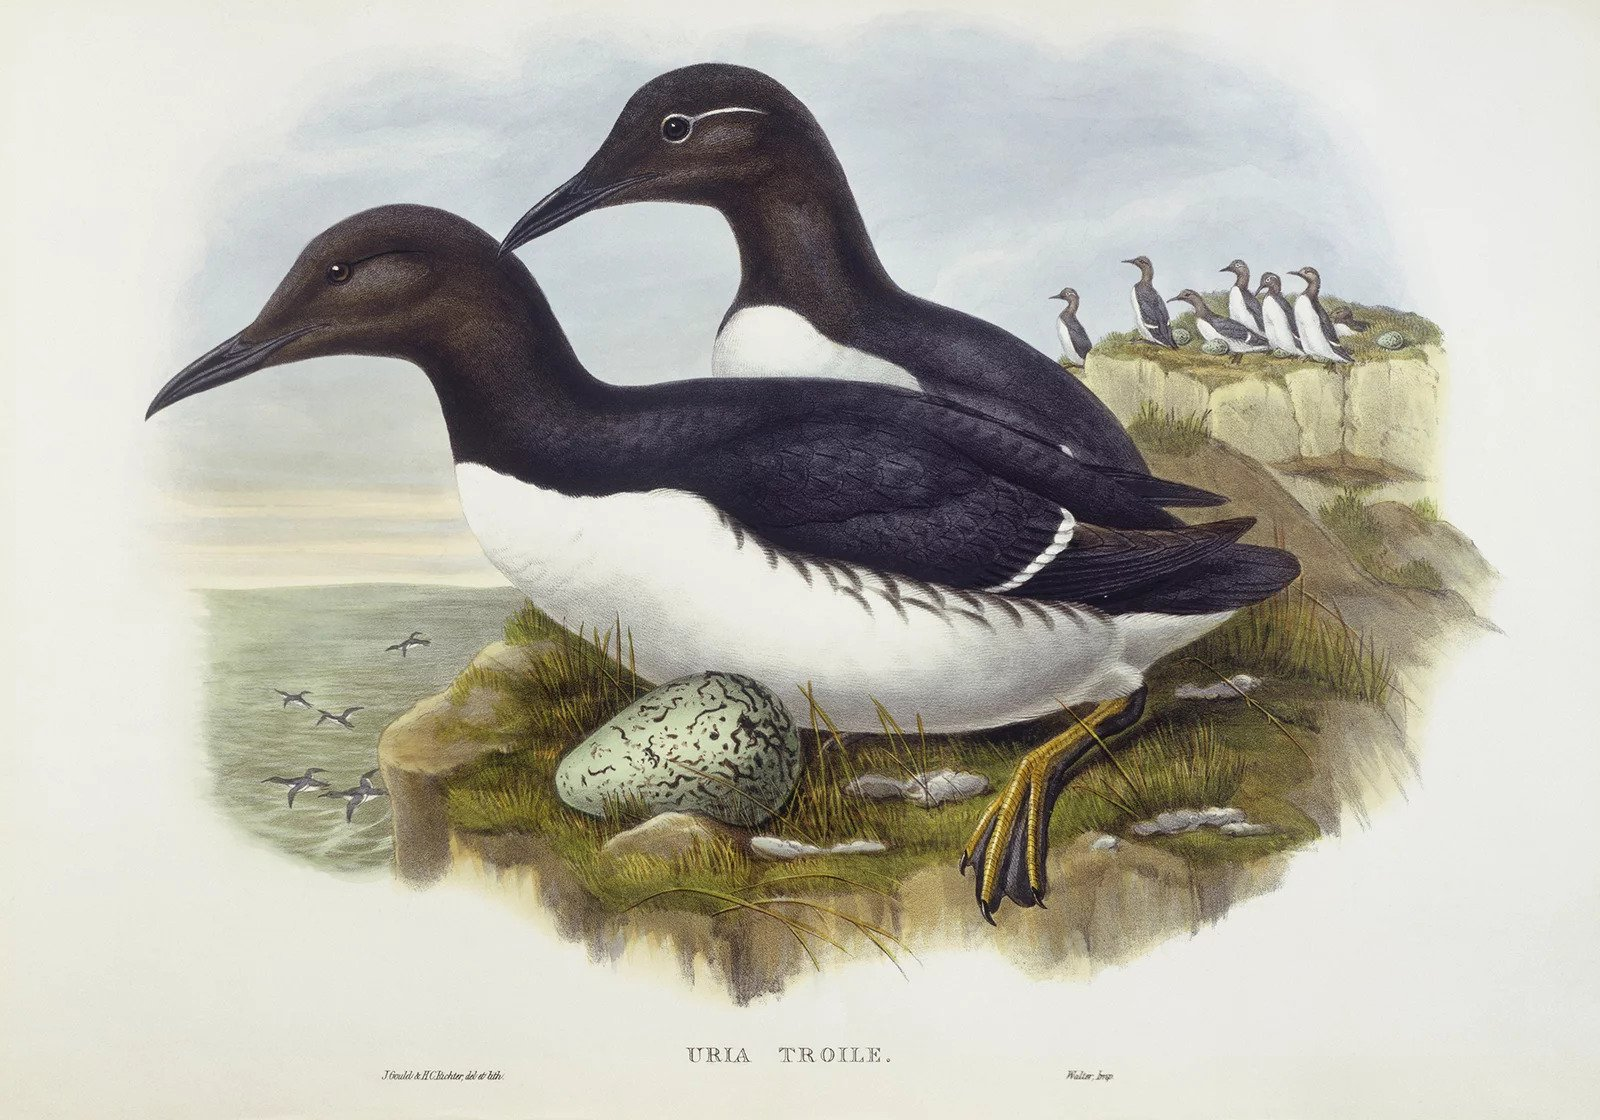 The common murre (Uria aalge), which was a source of eggs for San Francisco's egg rush. Engraving by John Gould, William Hart, H. C. Richter.